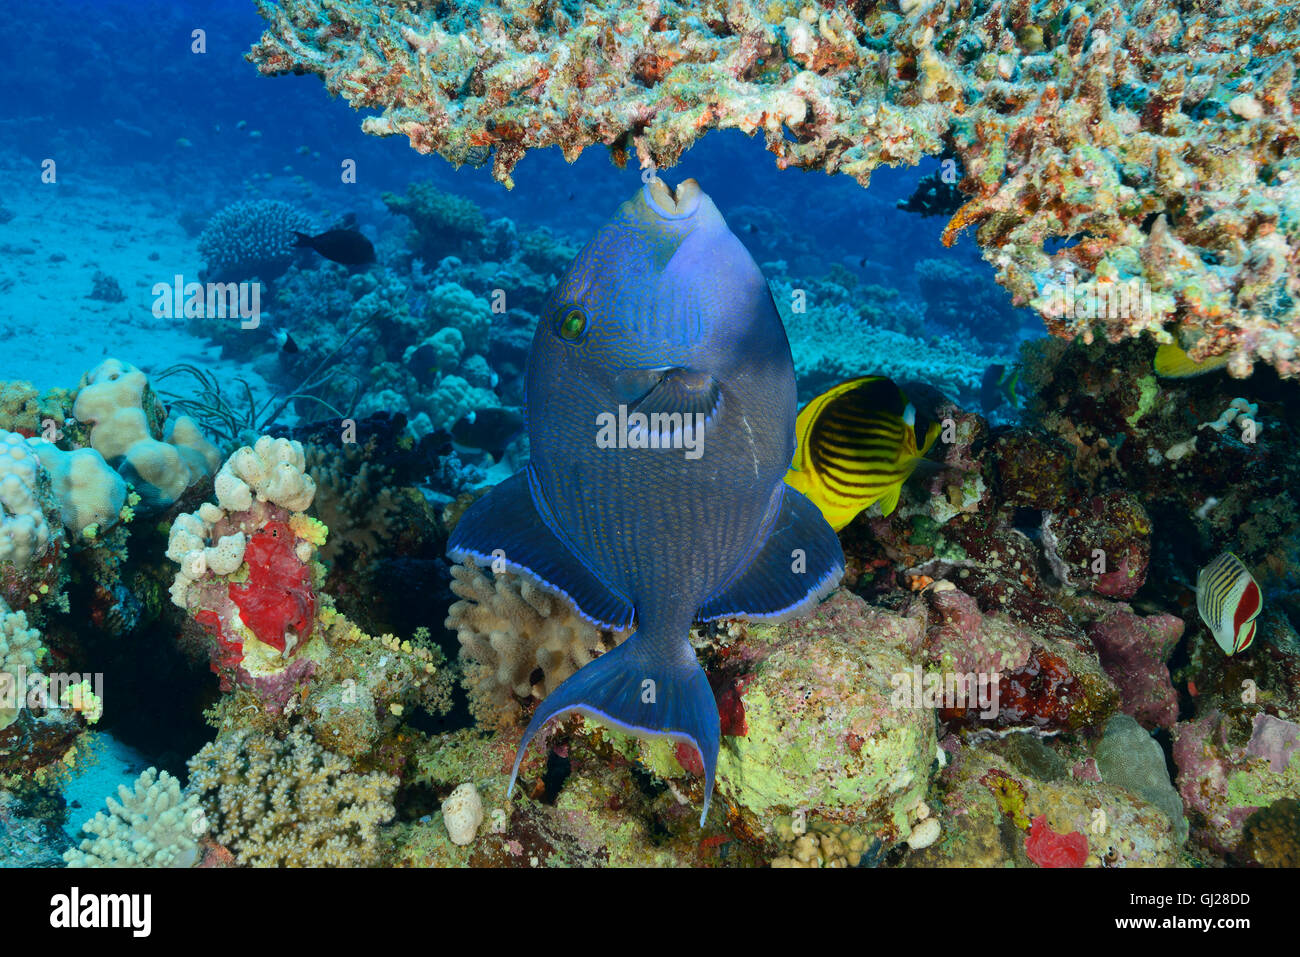 pseudobalistes fuscus blue rippled or yellow spotted triggerfish